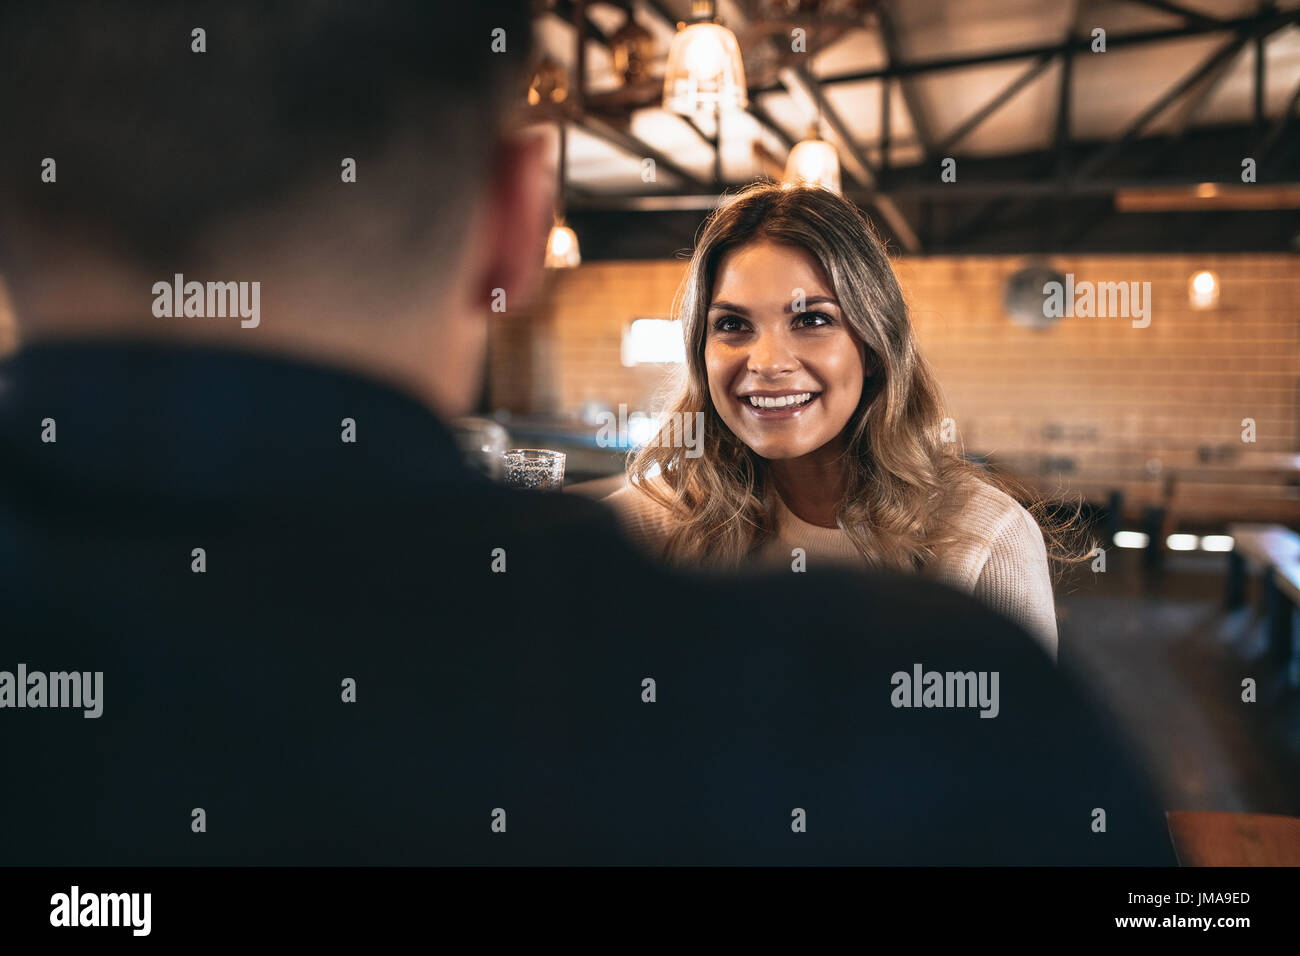 Beautiful young woman with a man at the bar. Couple at the bar. - Stock Image